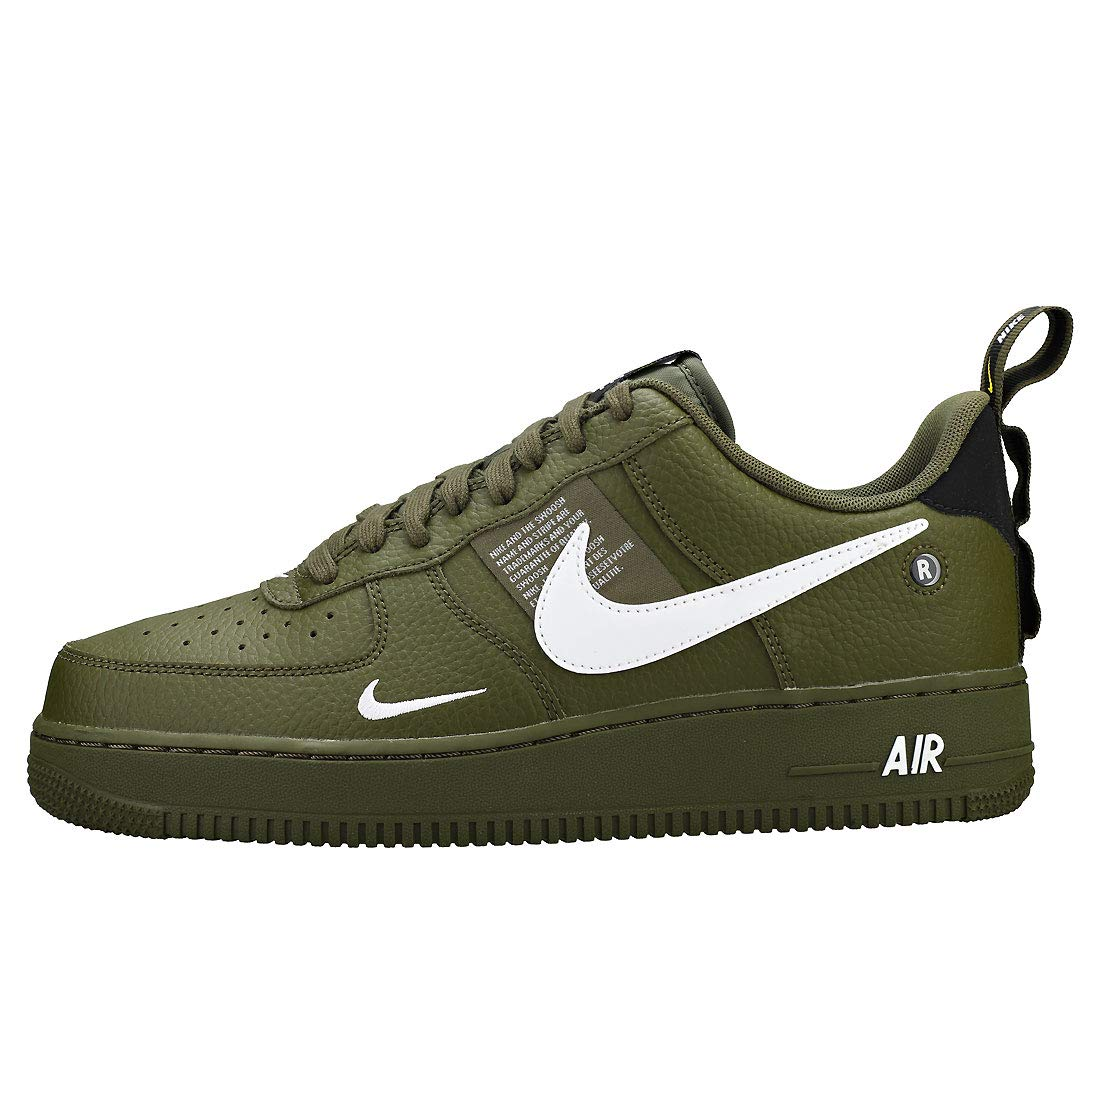 Nike Air Force 1 07 LV8 Utility, Zapatillas de Deporte para Hombre, (Olive Canvas/White/Black/Tour Yellow 300), 45 EU: Amazon.es: Zapatos y complementos